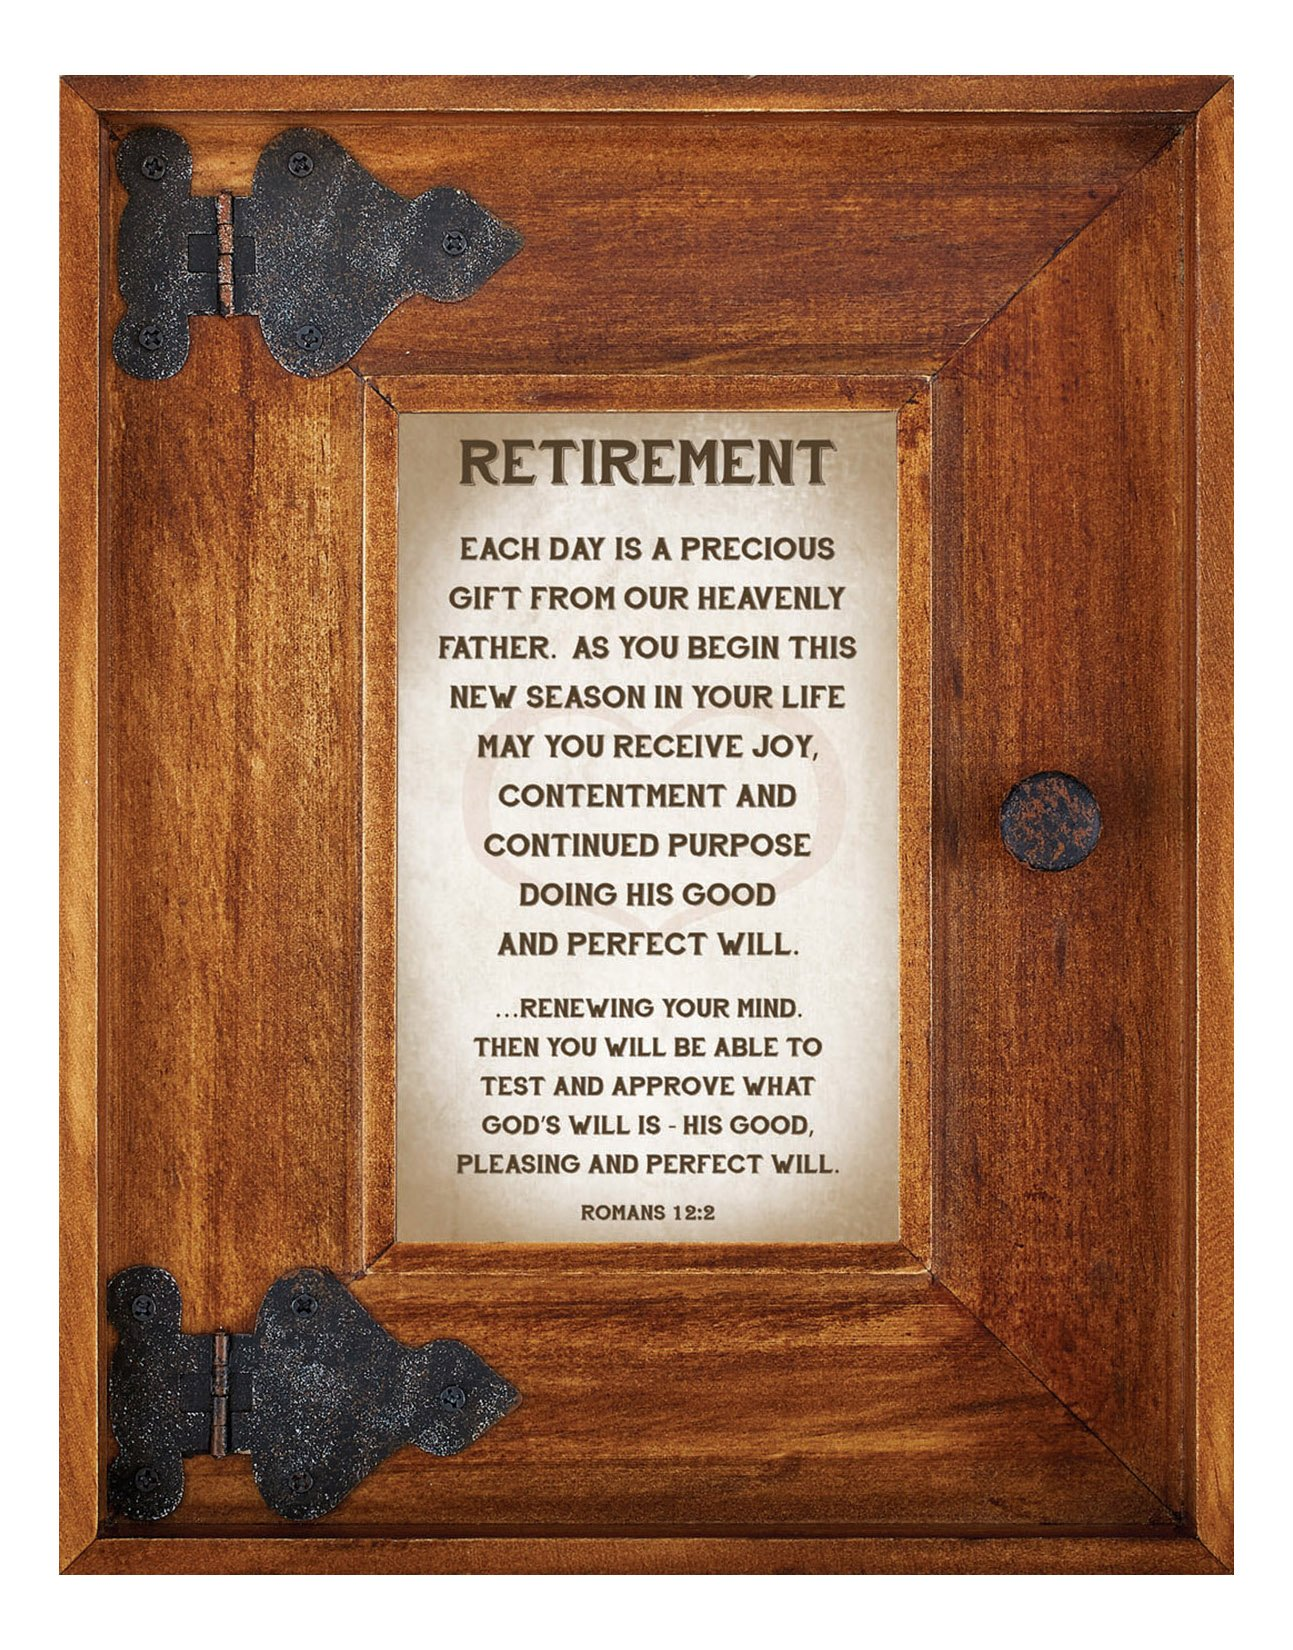 LoveLea Down Home Collection Tabletop Frame, Retirement